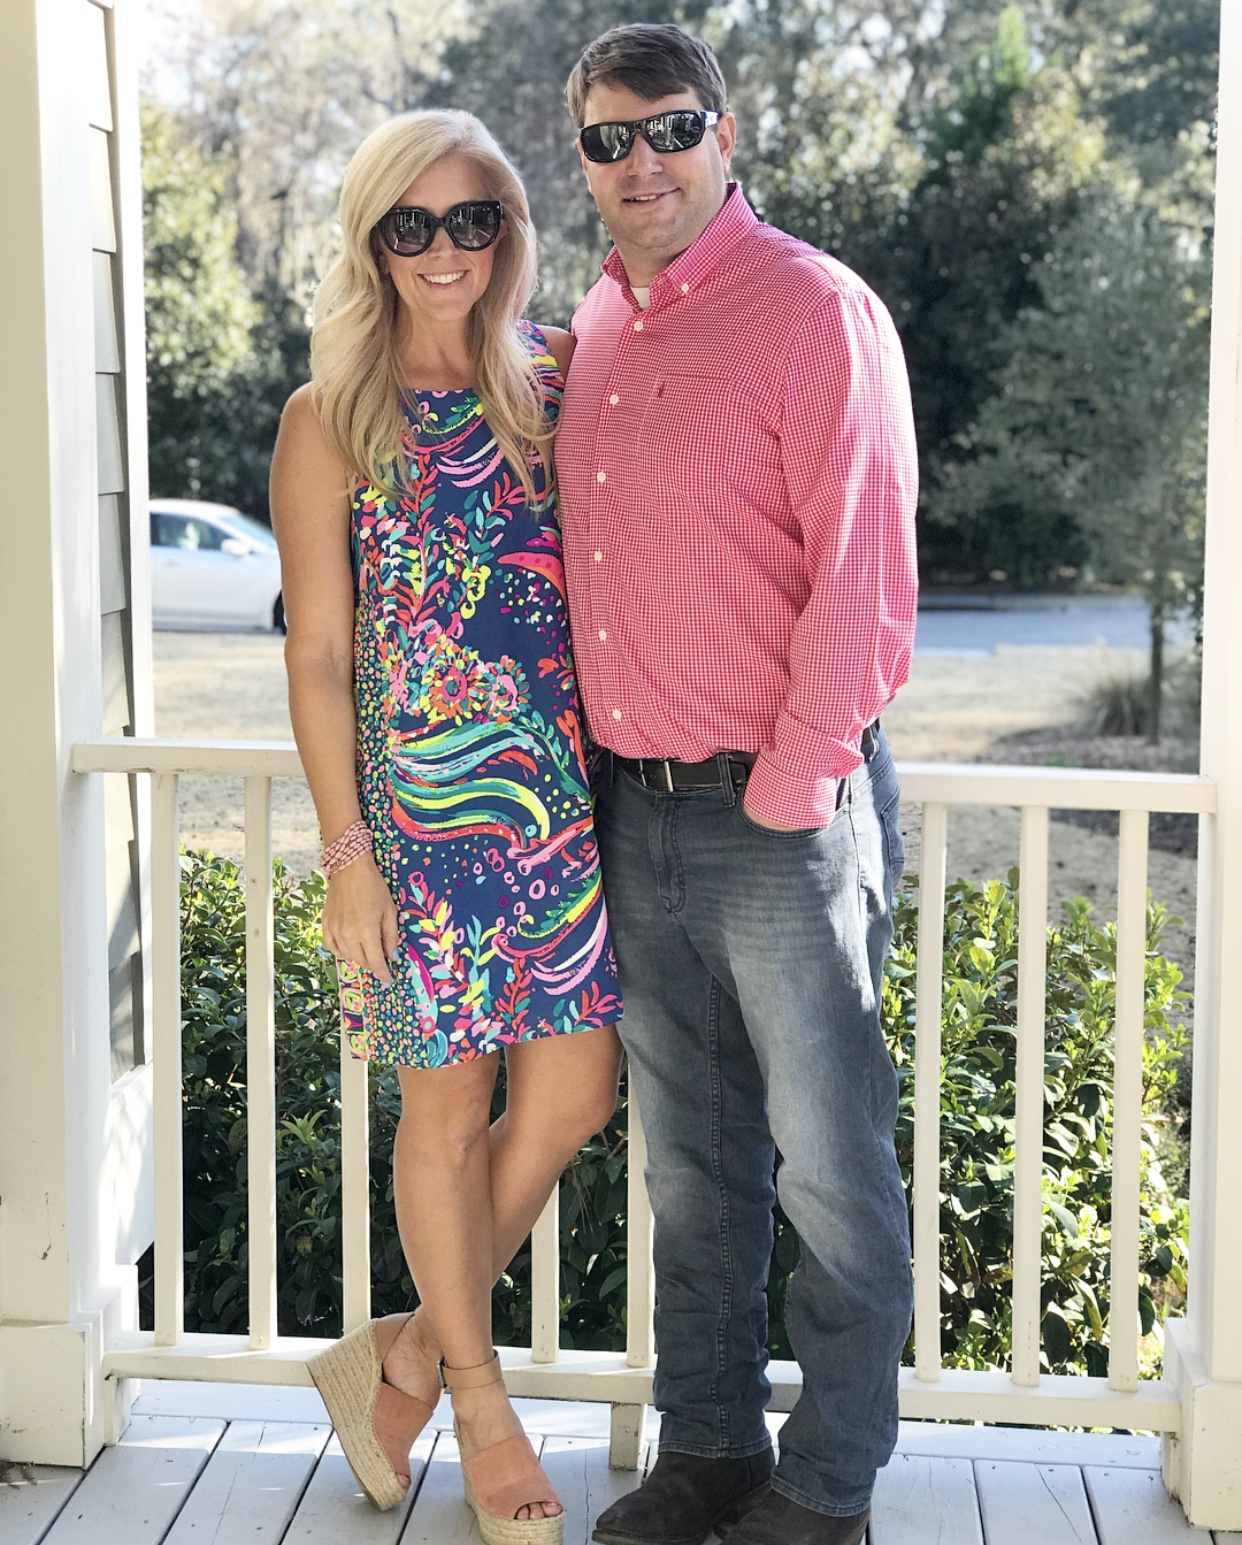 b9f5c49ae Wore my Jane Dress last Easter while we were in Key West on Spring Break.  Here s hoping this style will be a part of the sale today!